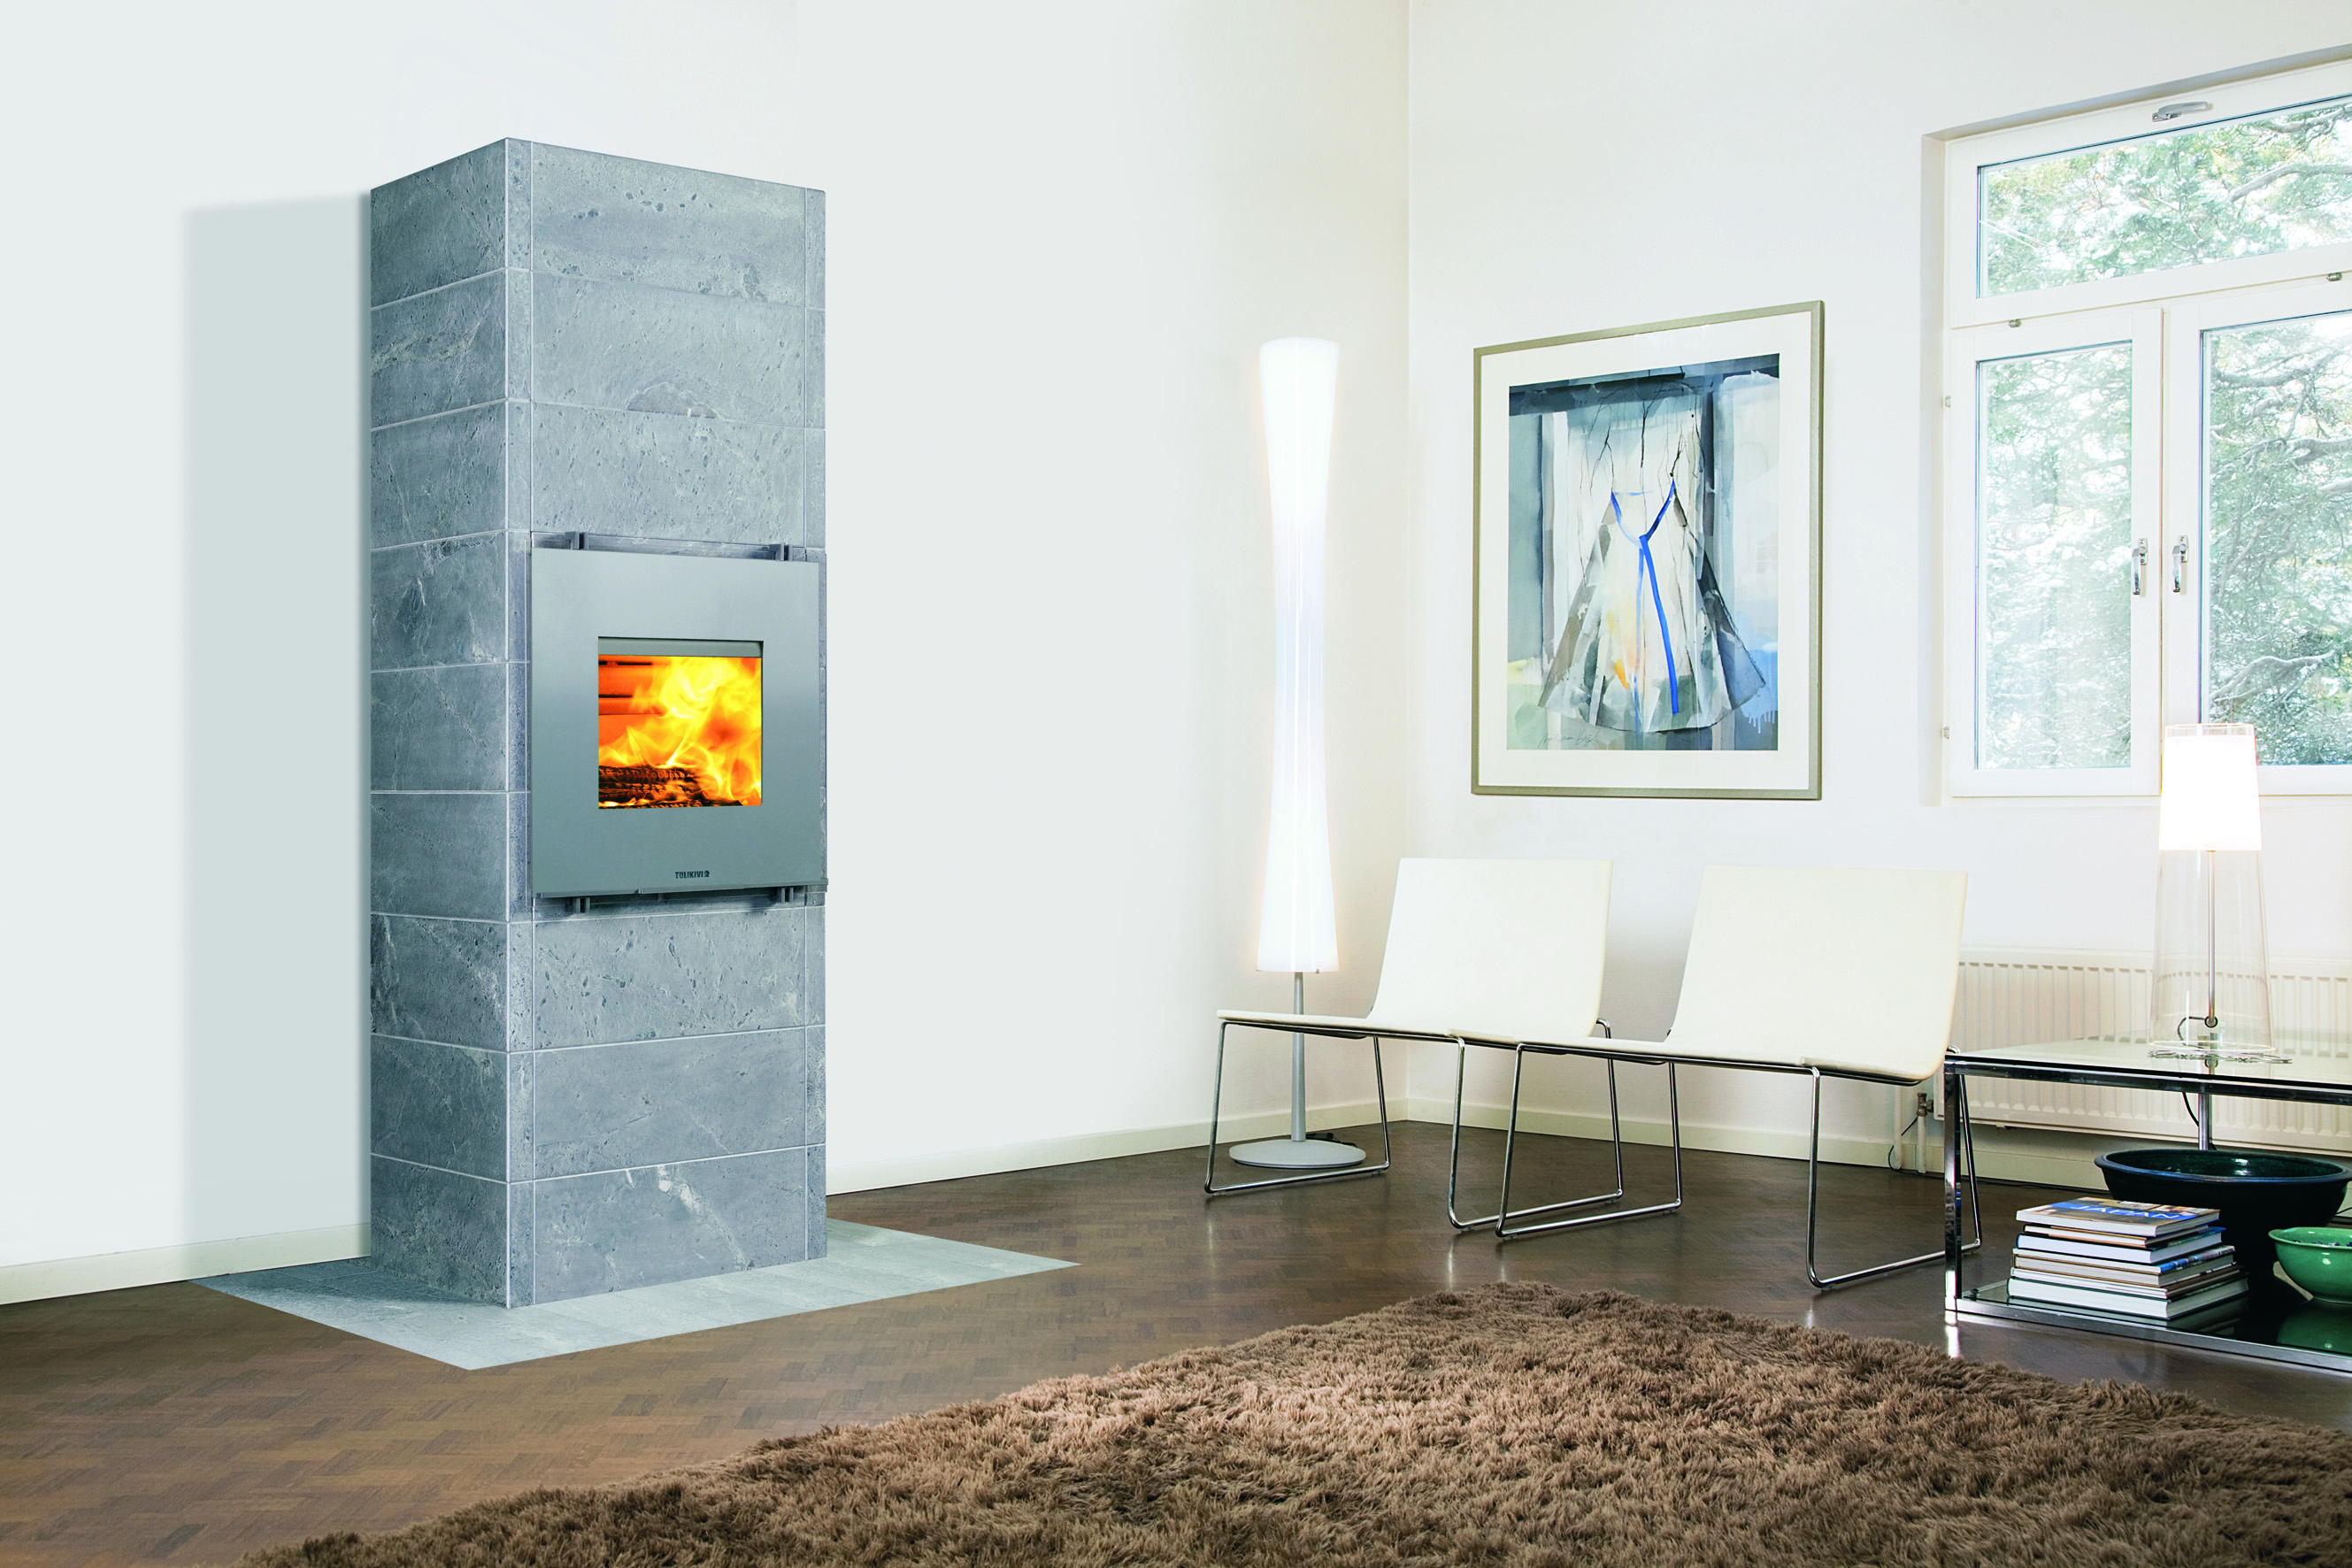 living room fireplaces pictures interior design ideas for small rooms uk stoves | tulikivi